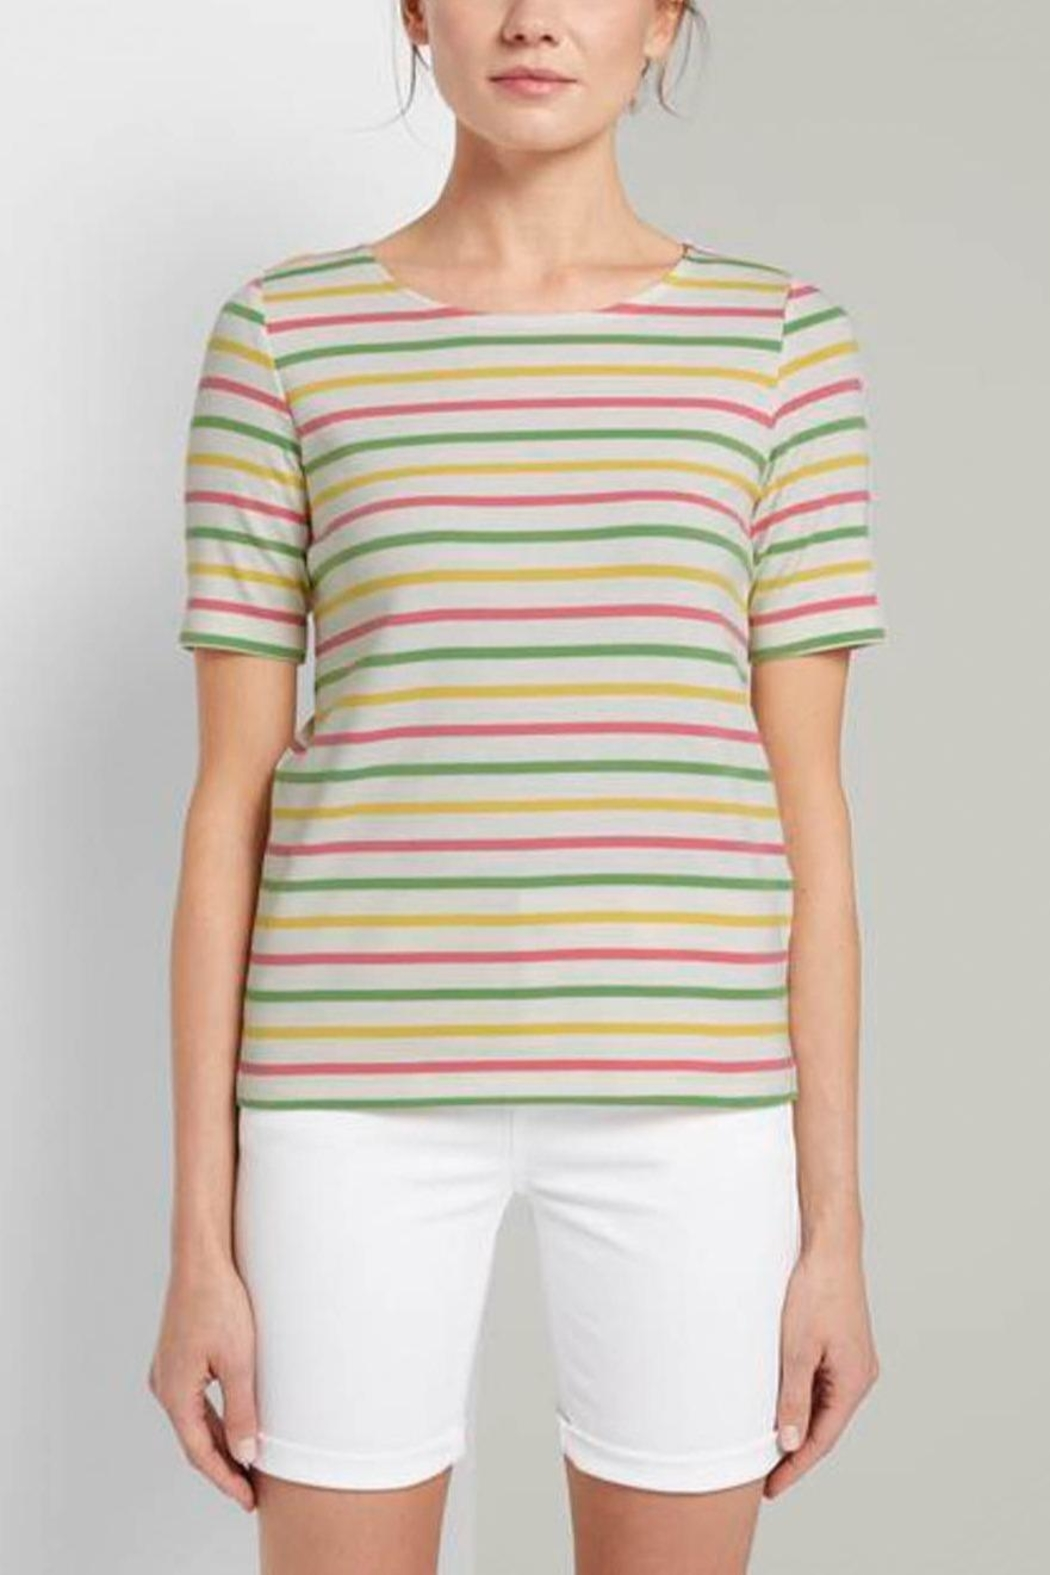 Tom Tailor Colorful T-Shirt With Stripes - Main Image